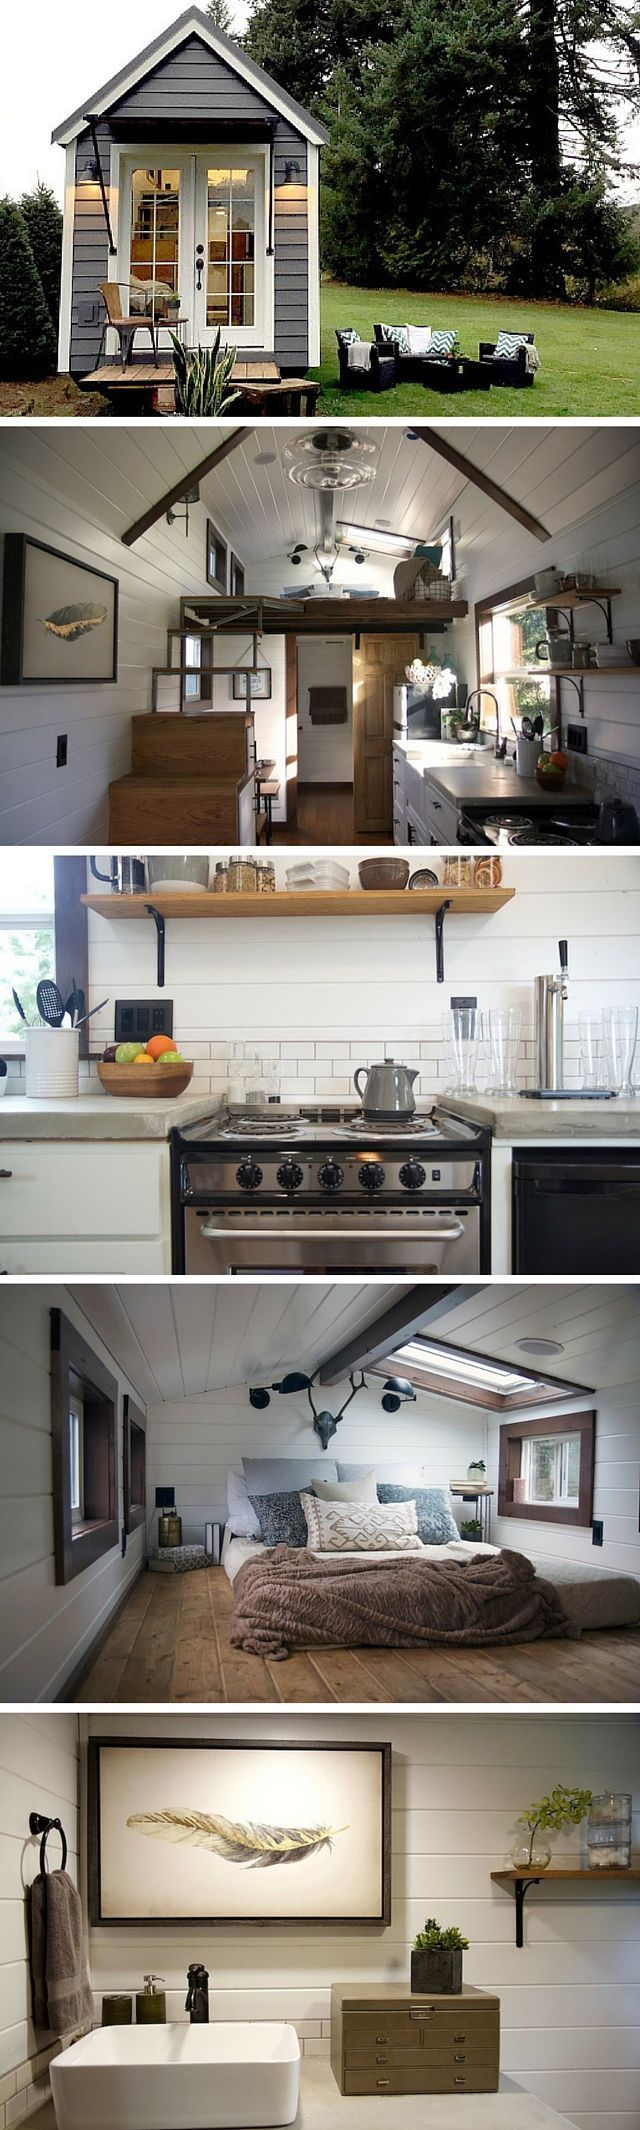 The NW Haven tiny house by Tiny Heirloom (Top View Furniture) | Top ...